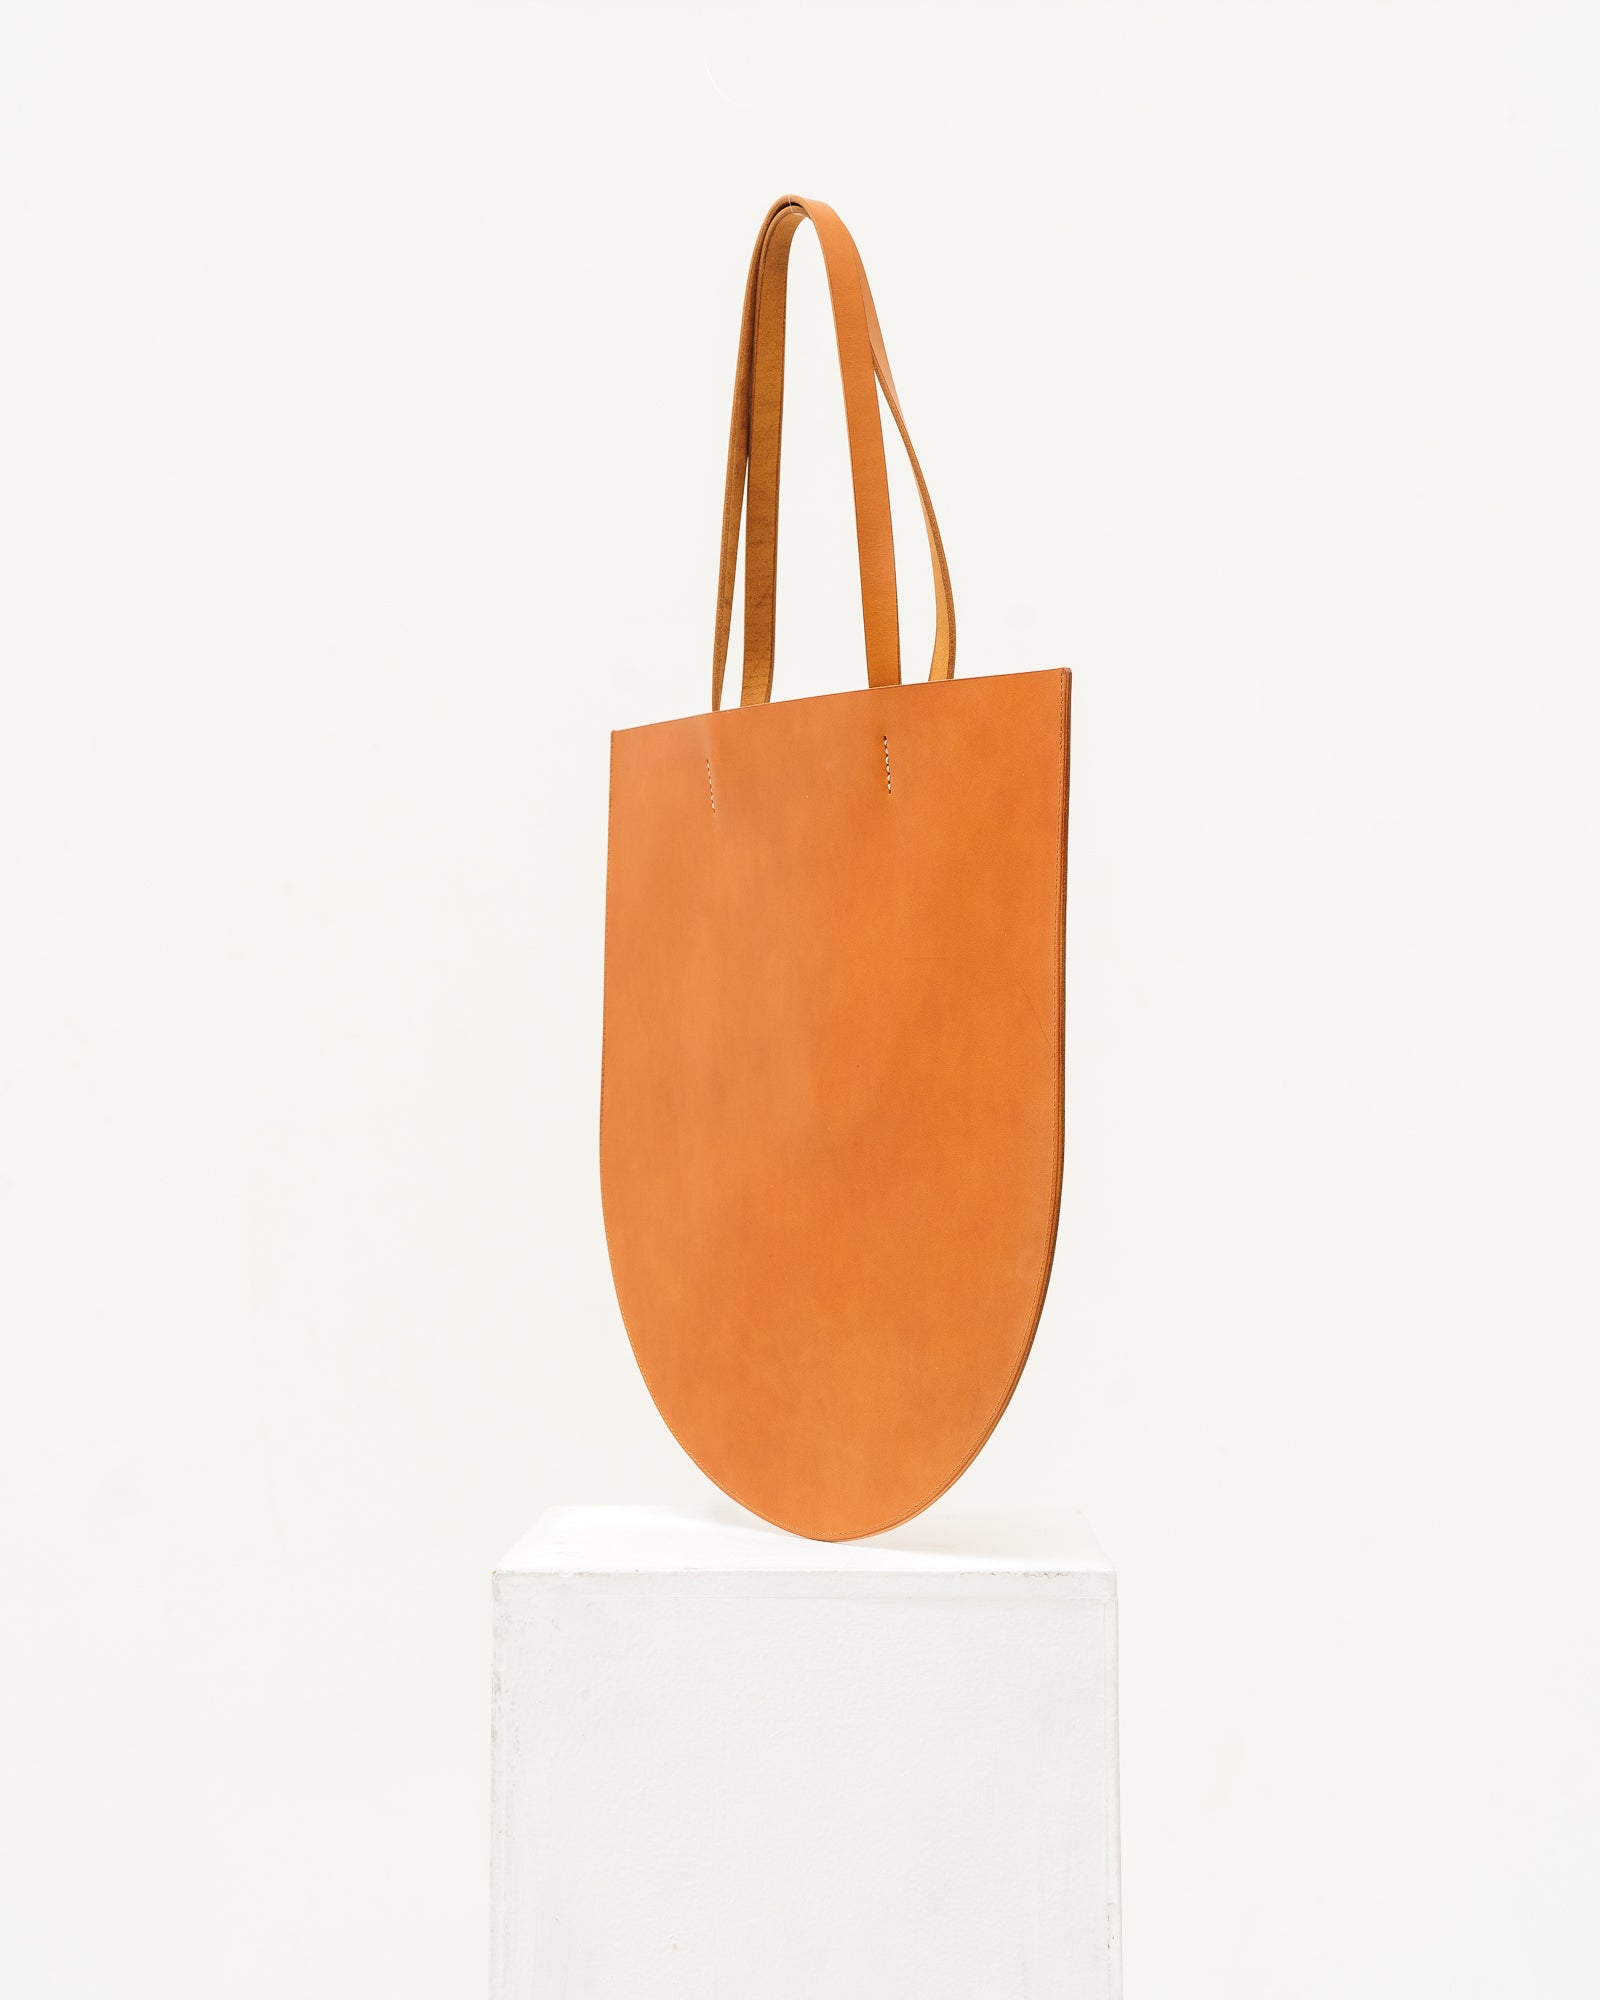 Sara Barner Thompson Bag, Tan